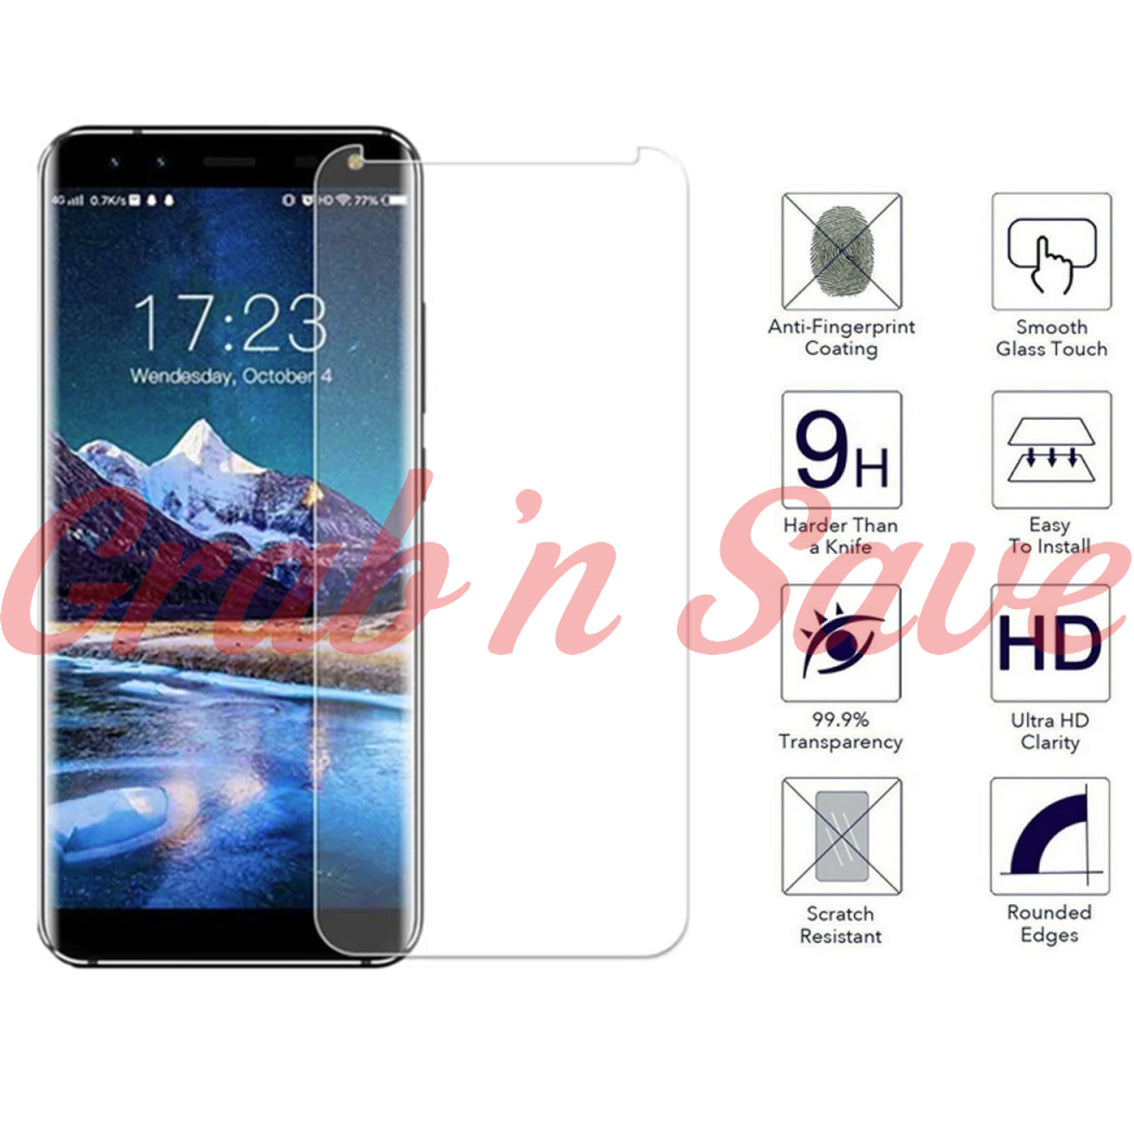 Samsung Note 8 Screen Protector, Glass Screen Protector, Tempered Glass Screen Protector